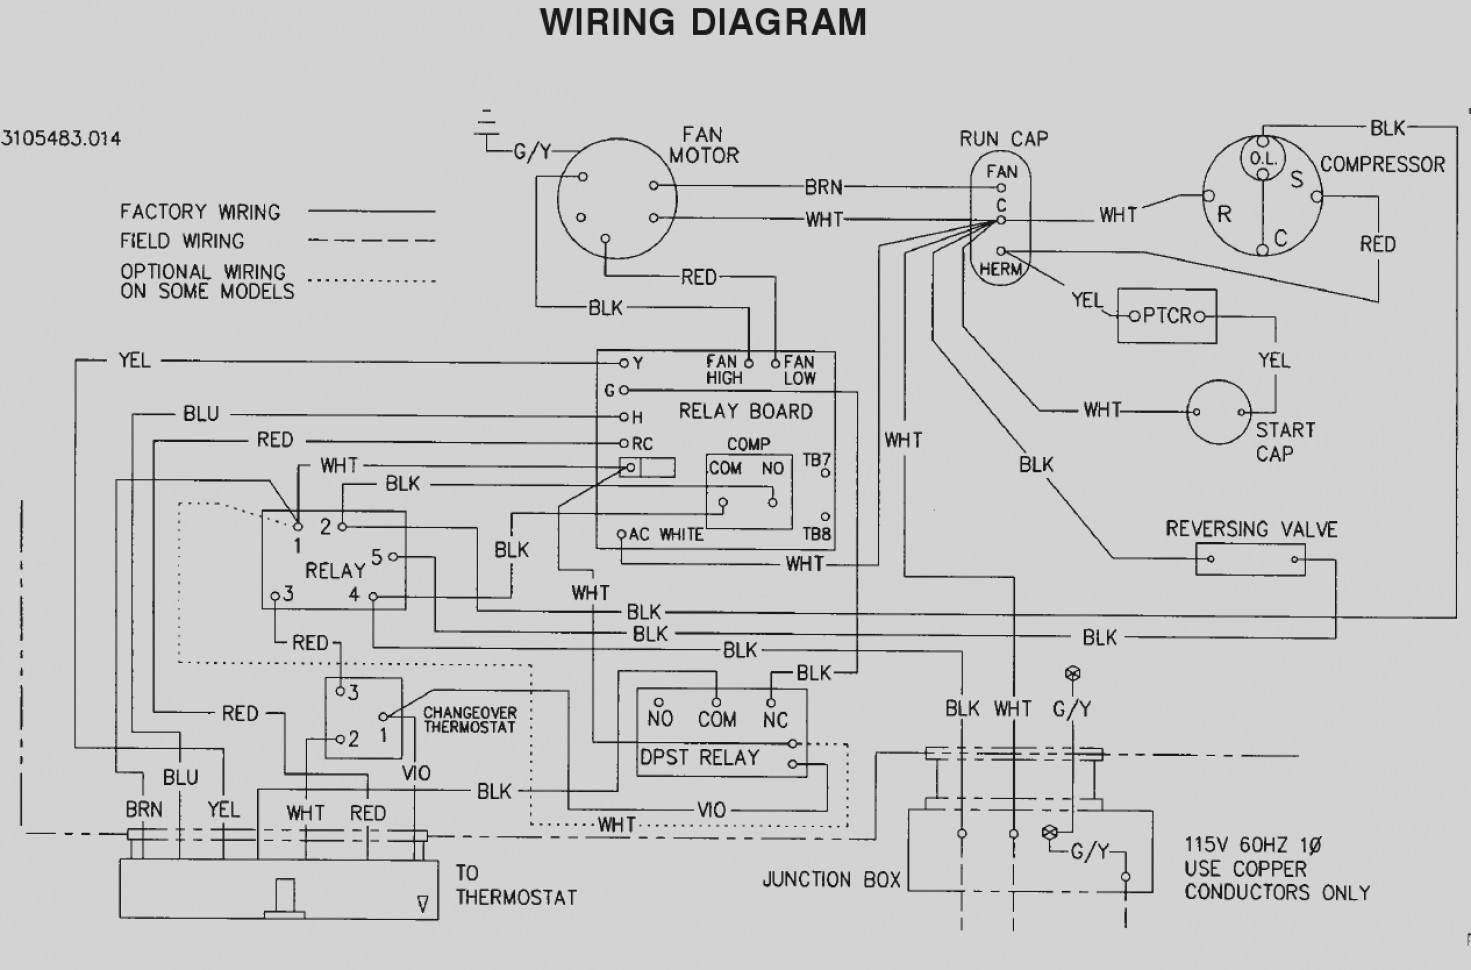 wiring diagram for dometic ac 3316230 000 thermostat kit free download  u2022 oasis